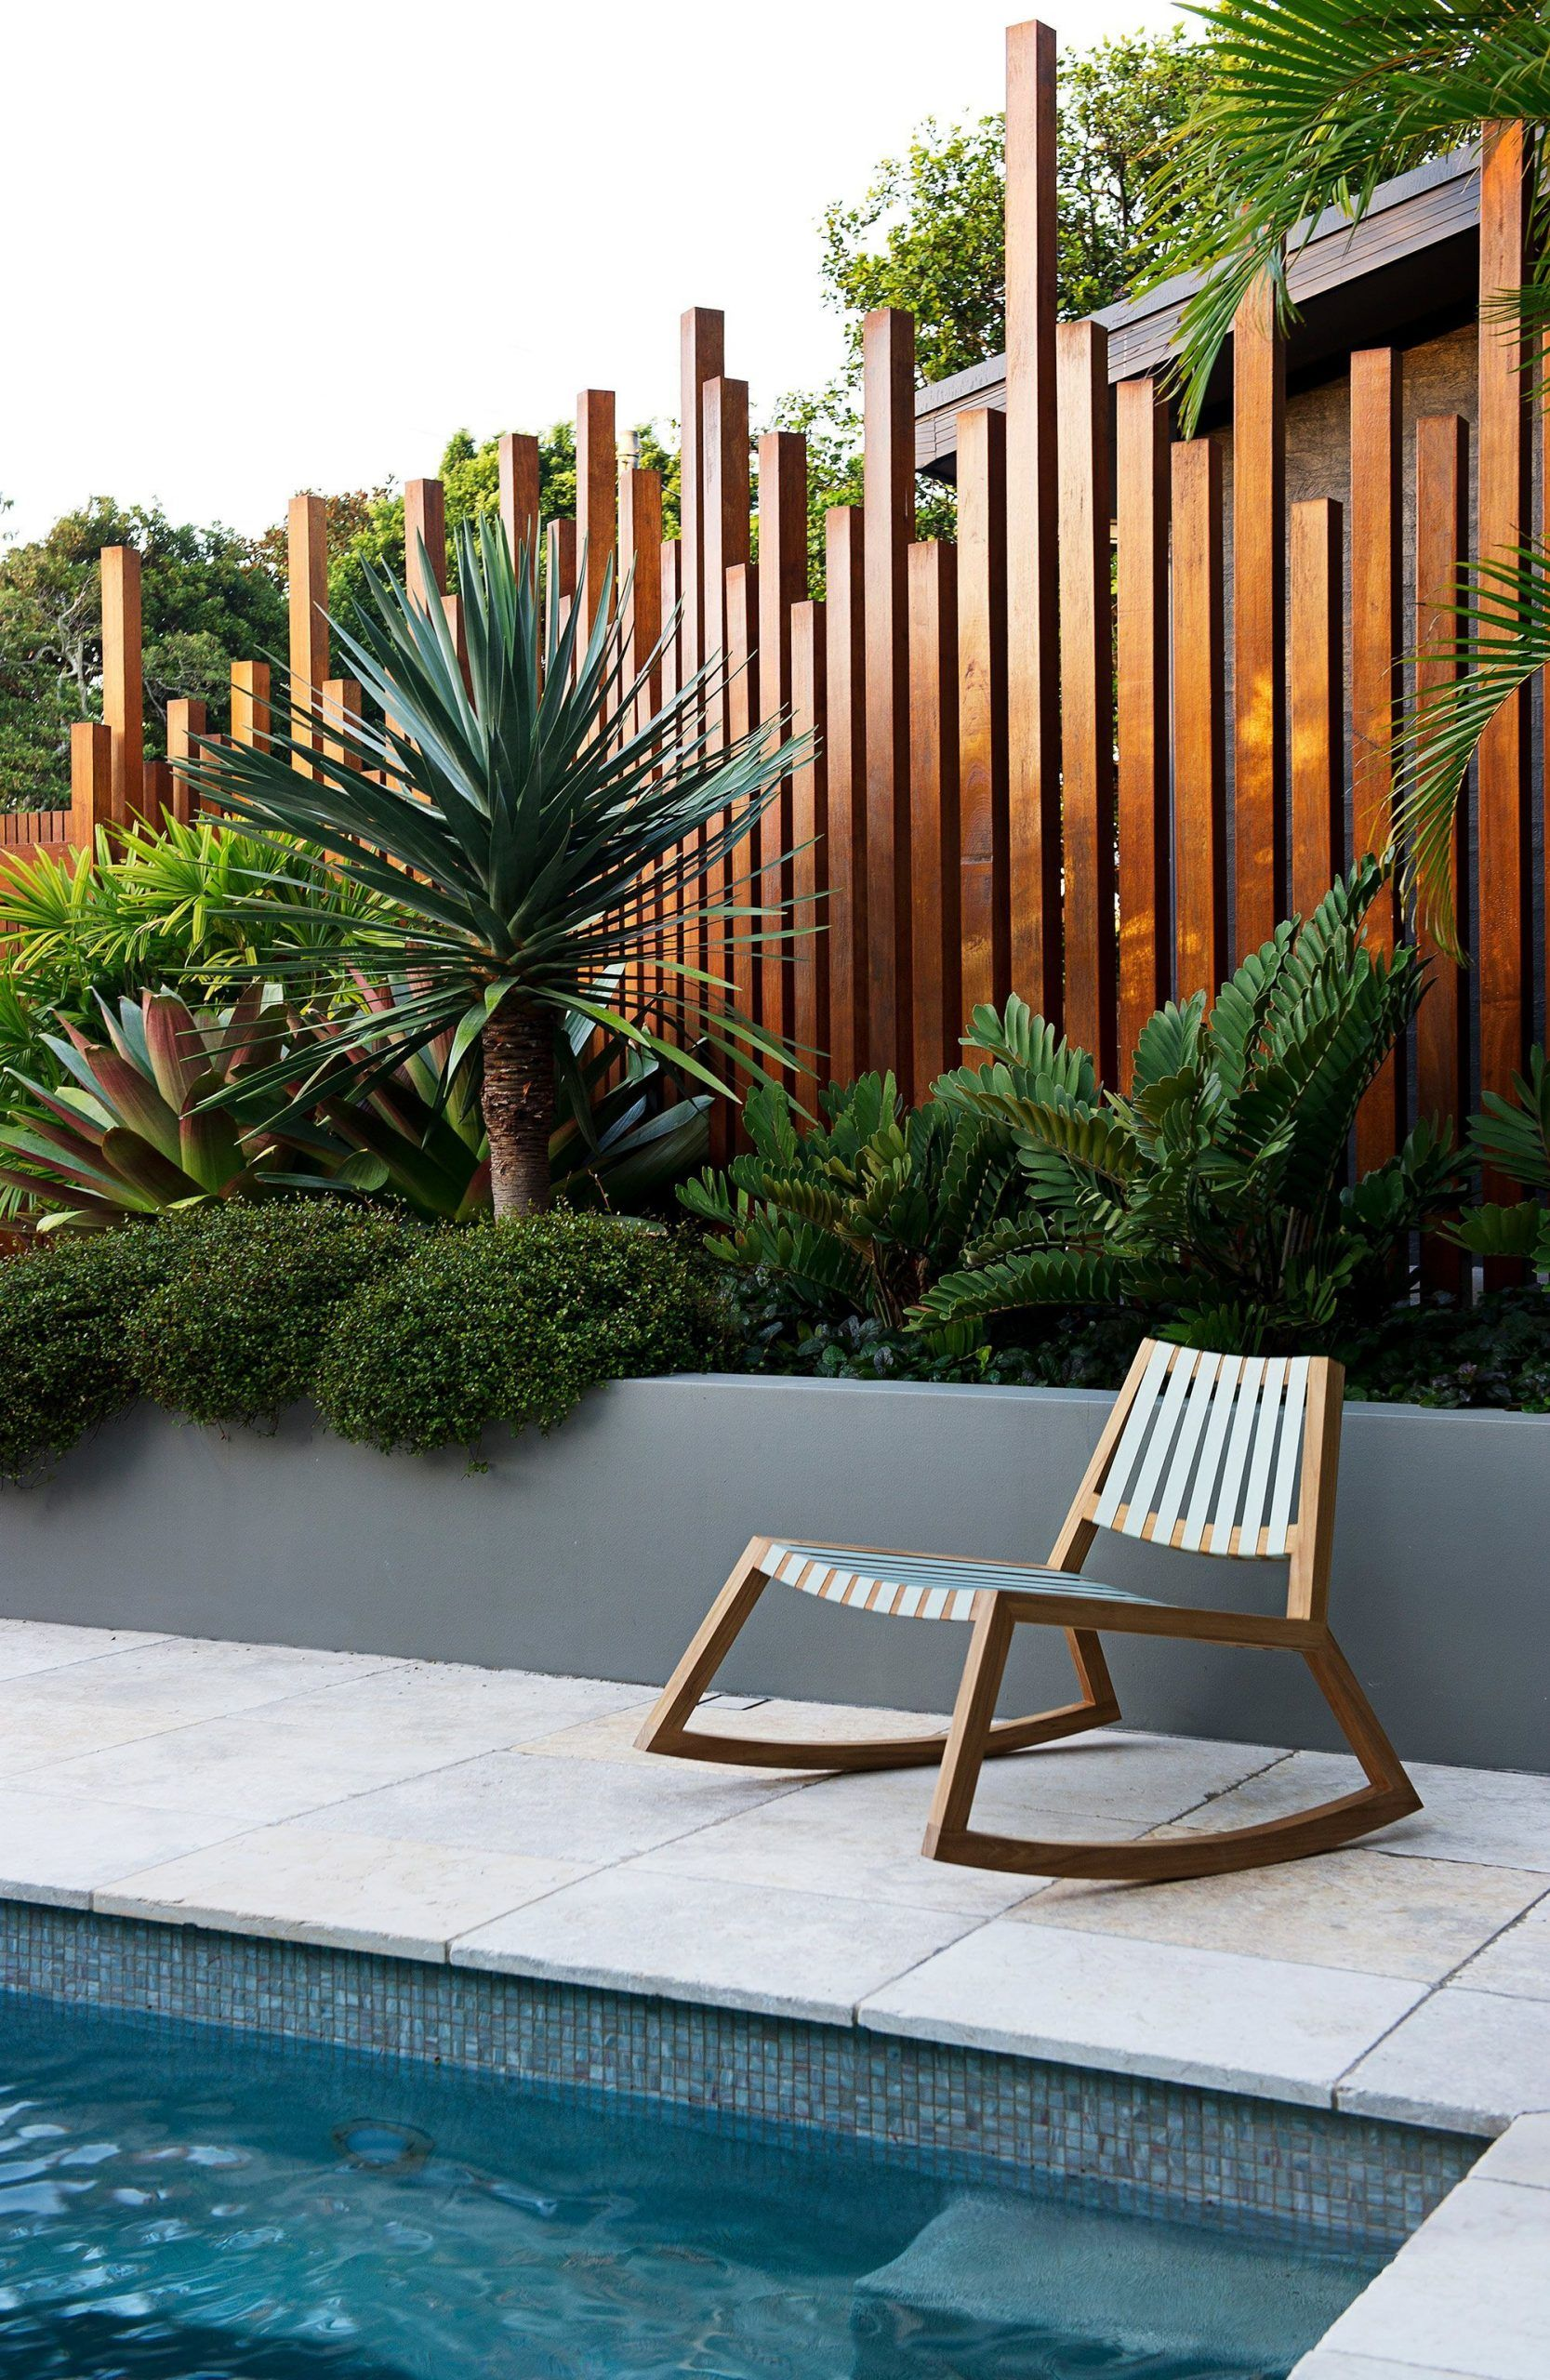 The Ultimate Creative Guide To Wall Art Pins Time Pinterest Blog Art Blog Creative In 2020 Backyard Landscaping Designs Backyard Pool Designs Backyard Landscaping